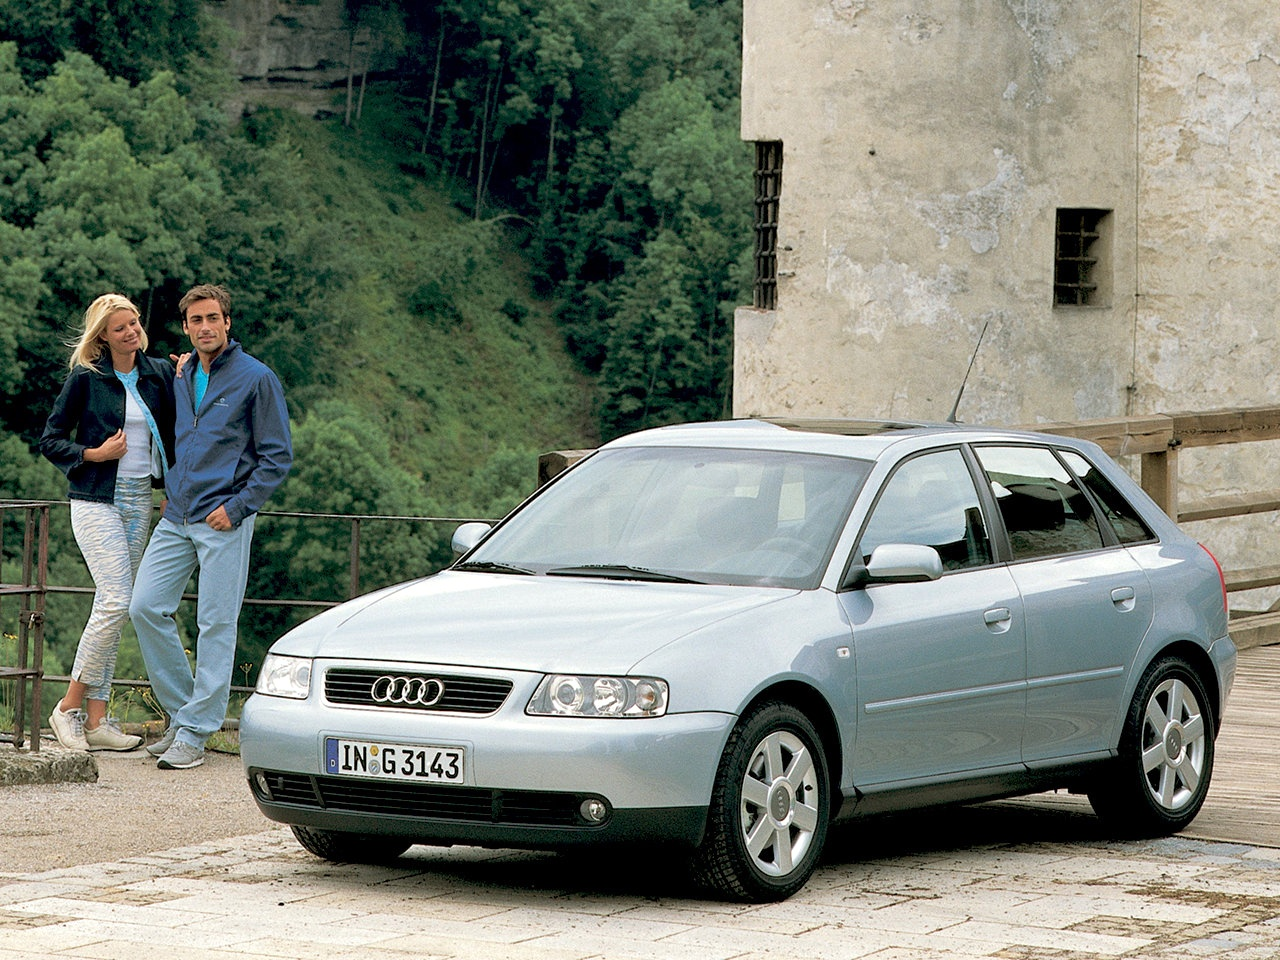 2000 Audi A3 (8l) - pictures, information and specs - Auto ...